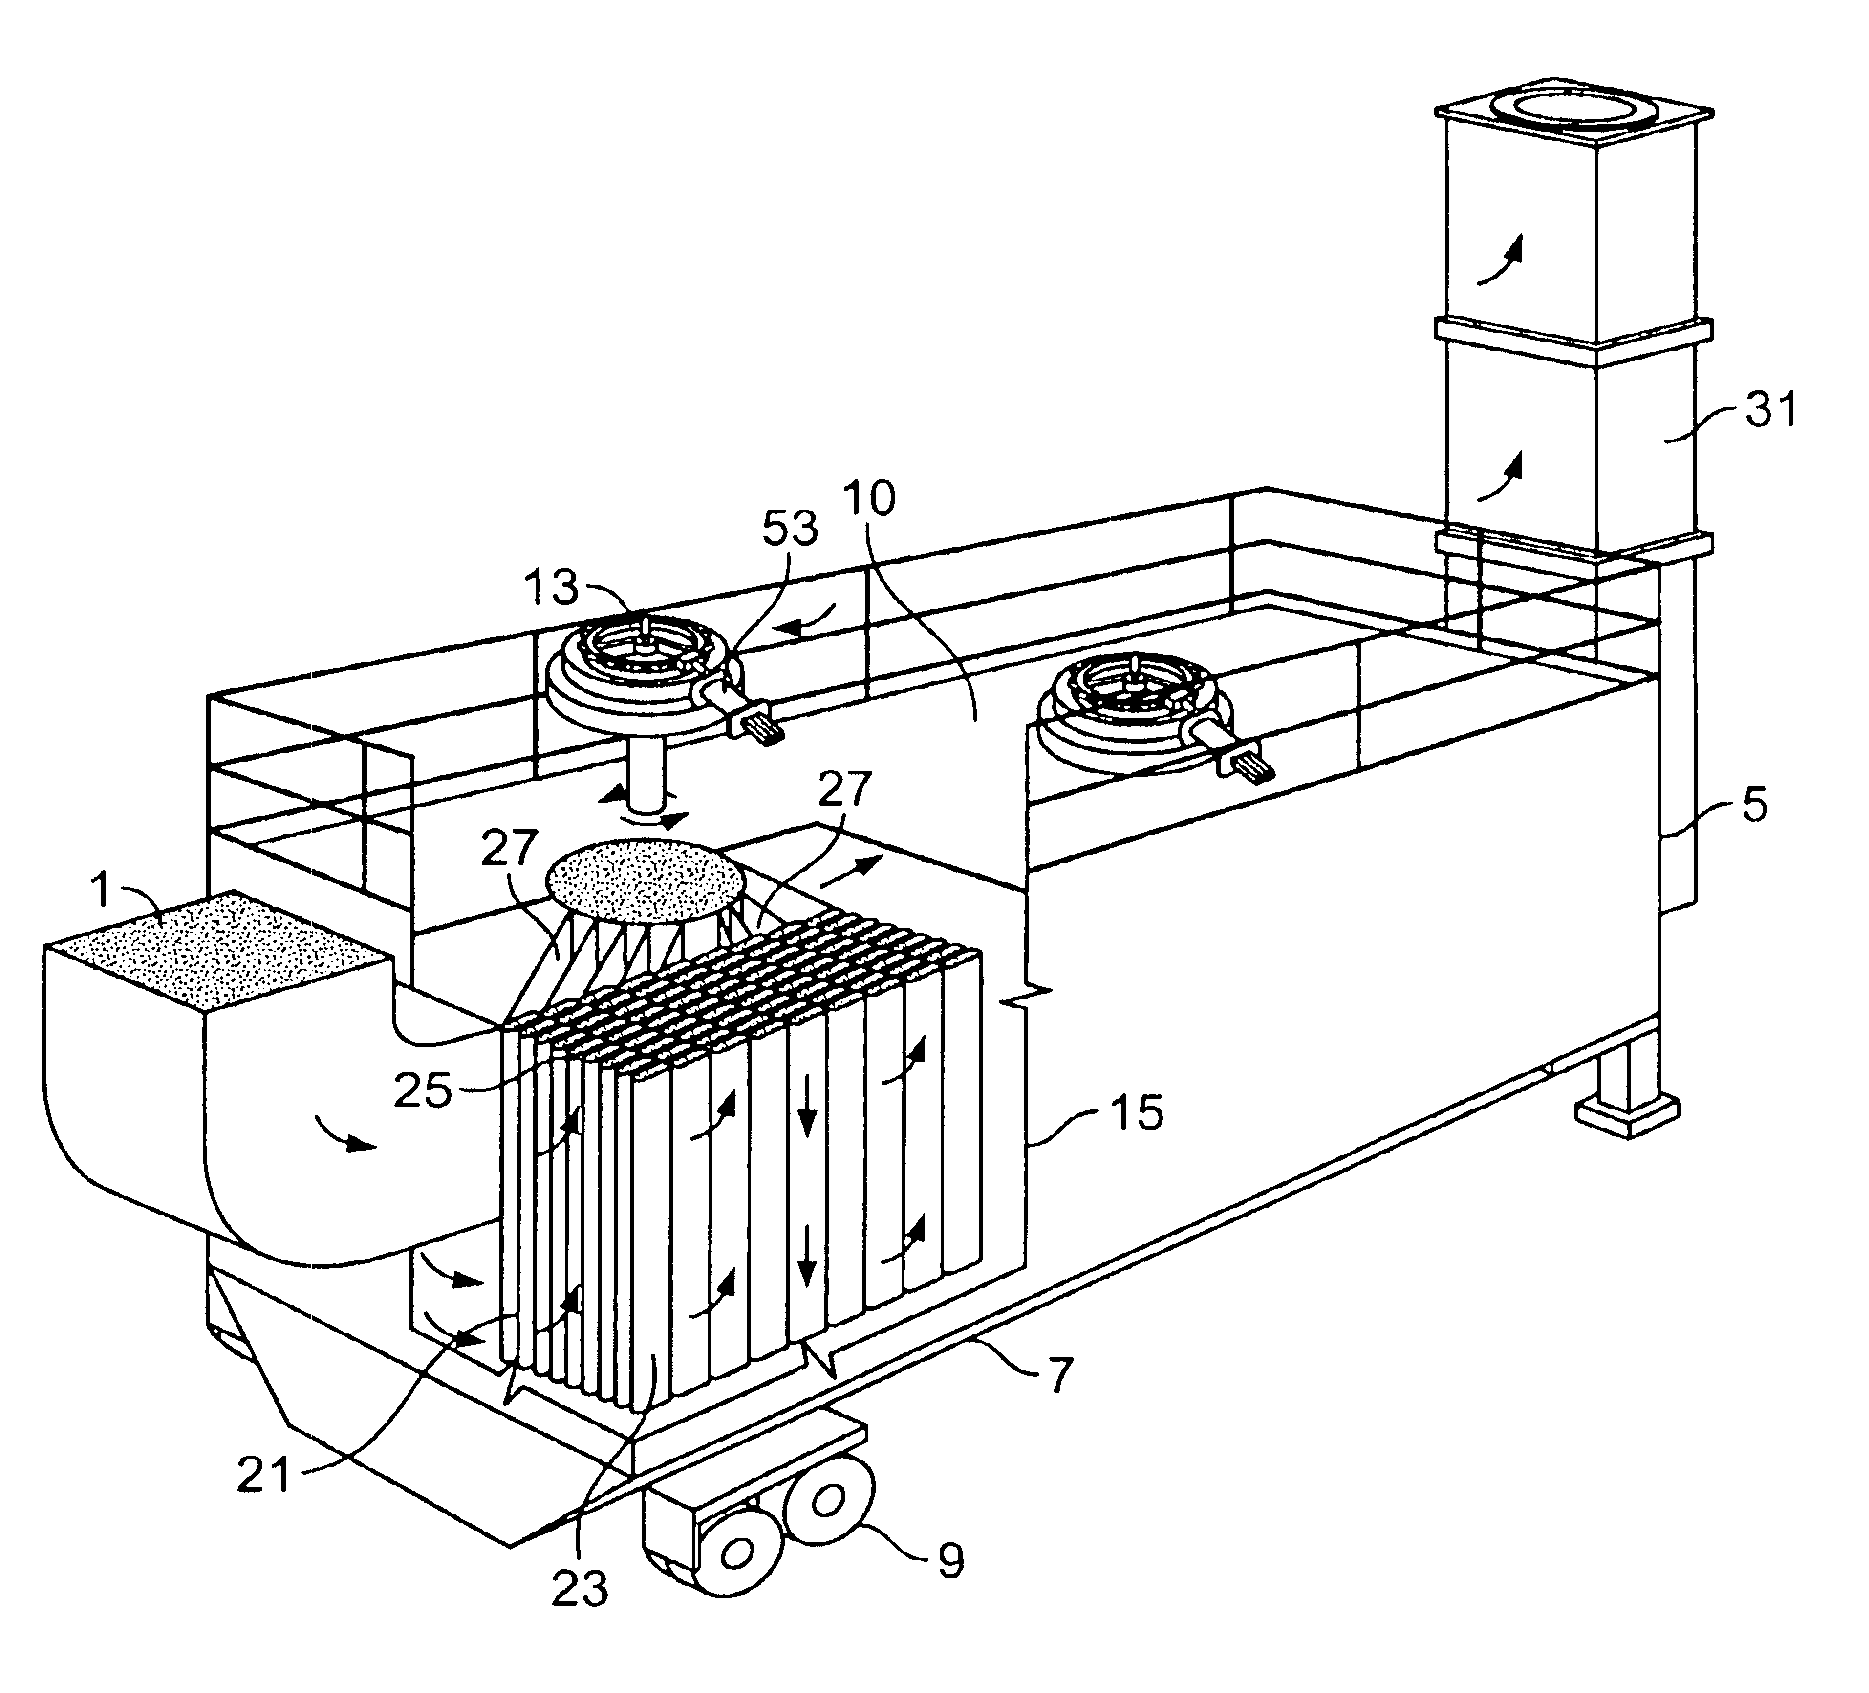 patent us6890365 - reverse-flow baghouse